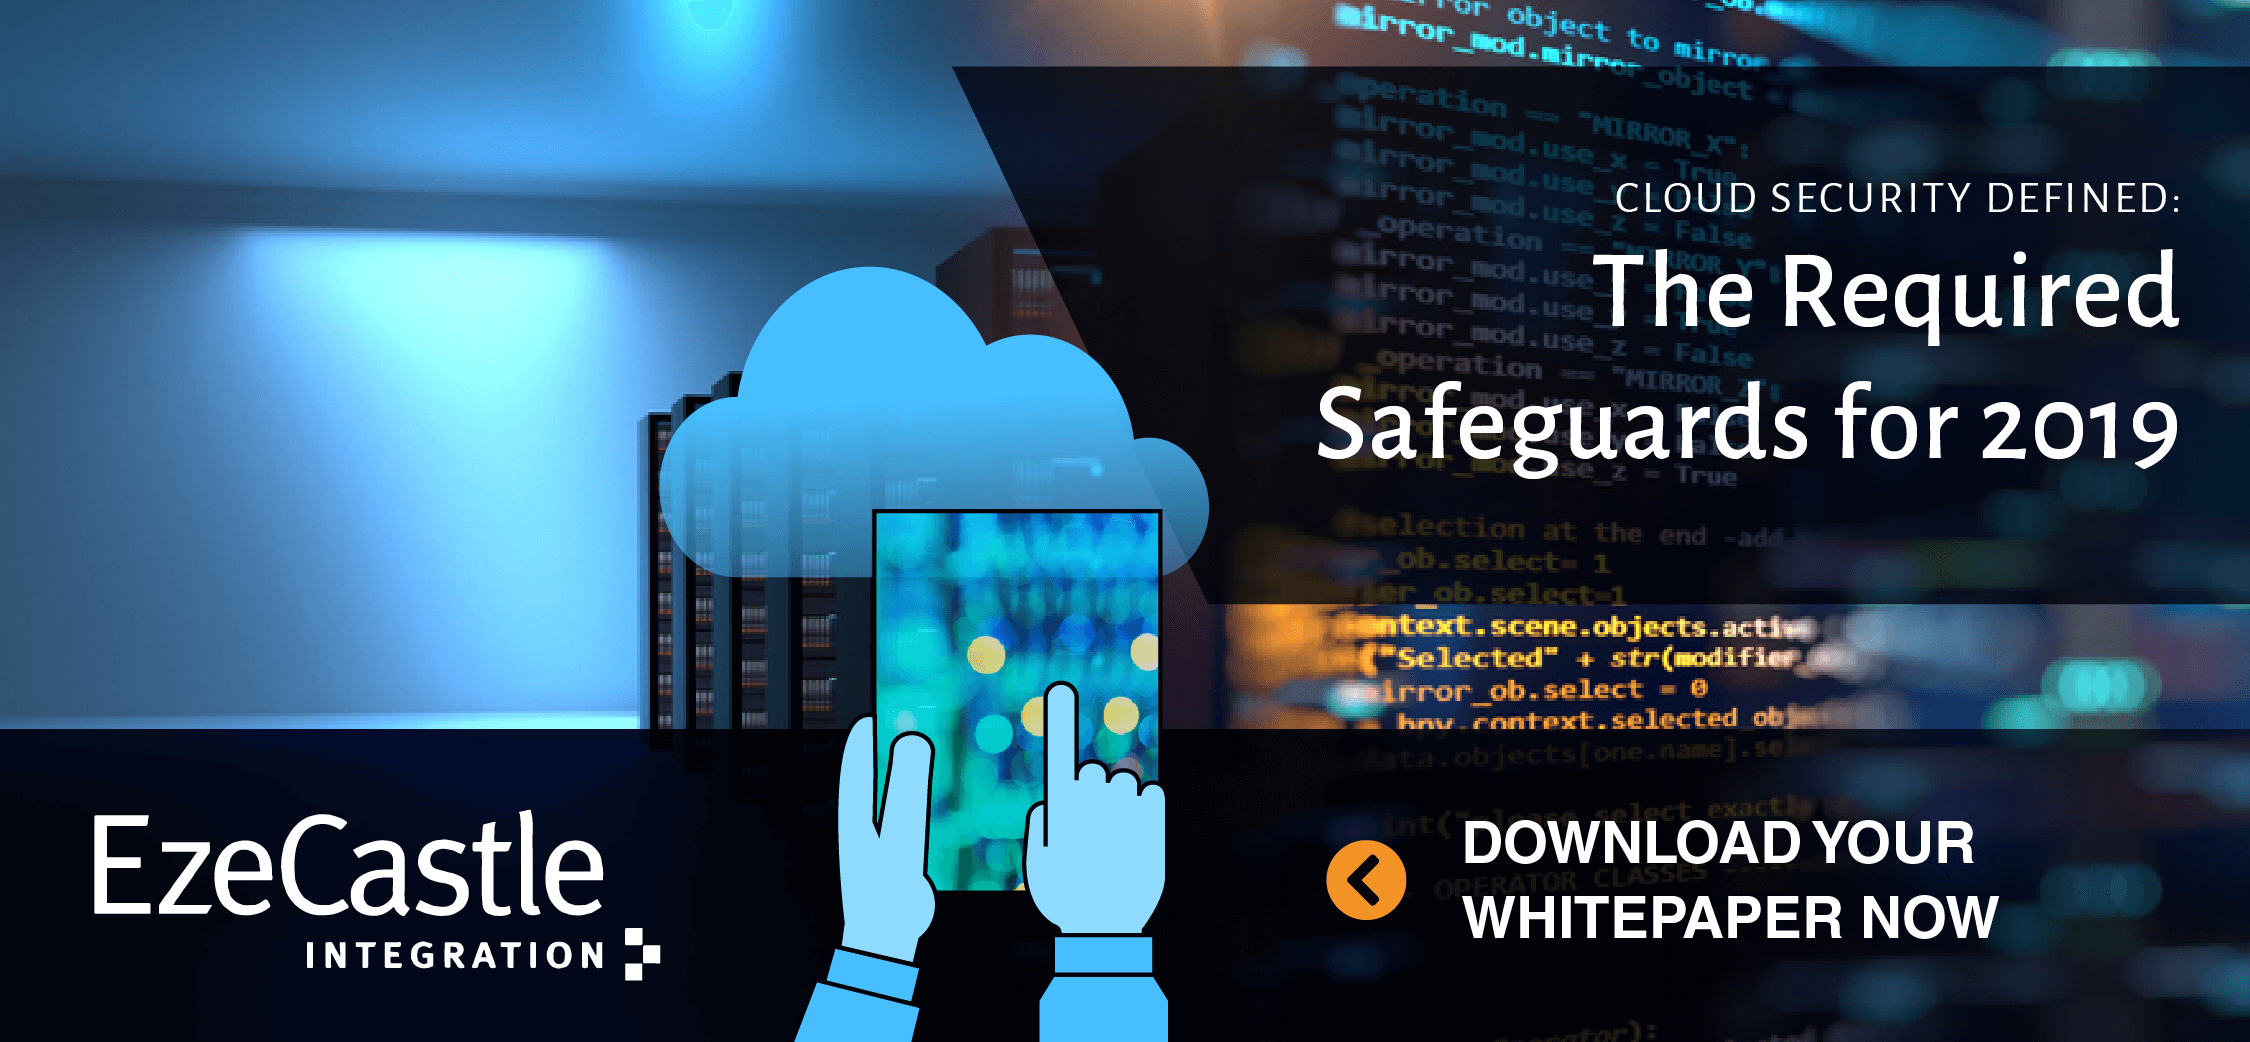 Cloud security whitepaper